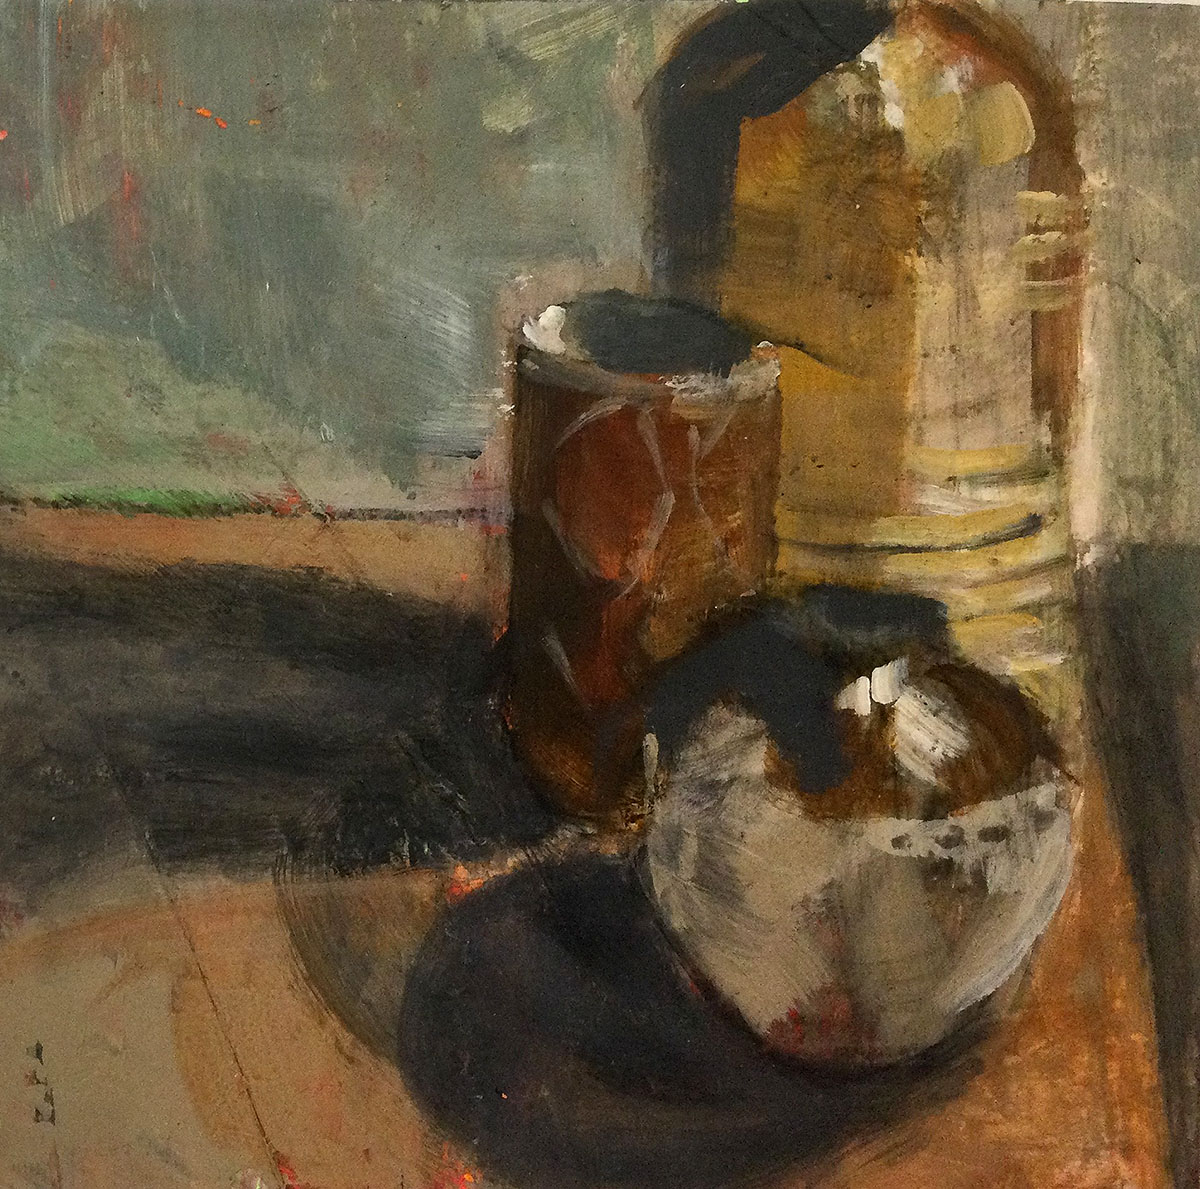 Mary Lambie, 'Three Brown Bowls', oil on paper and cradled board